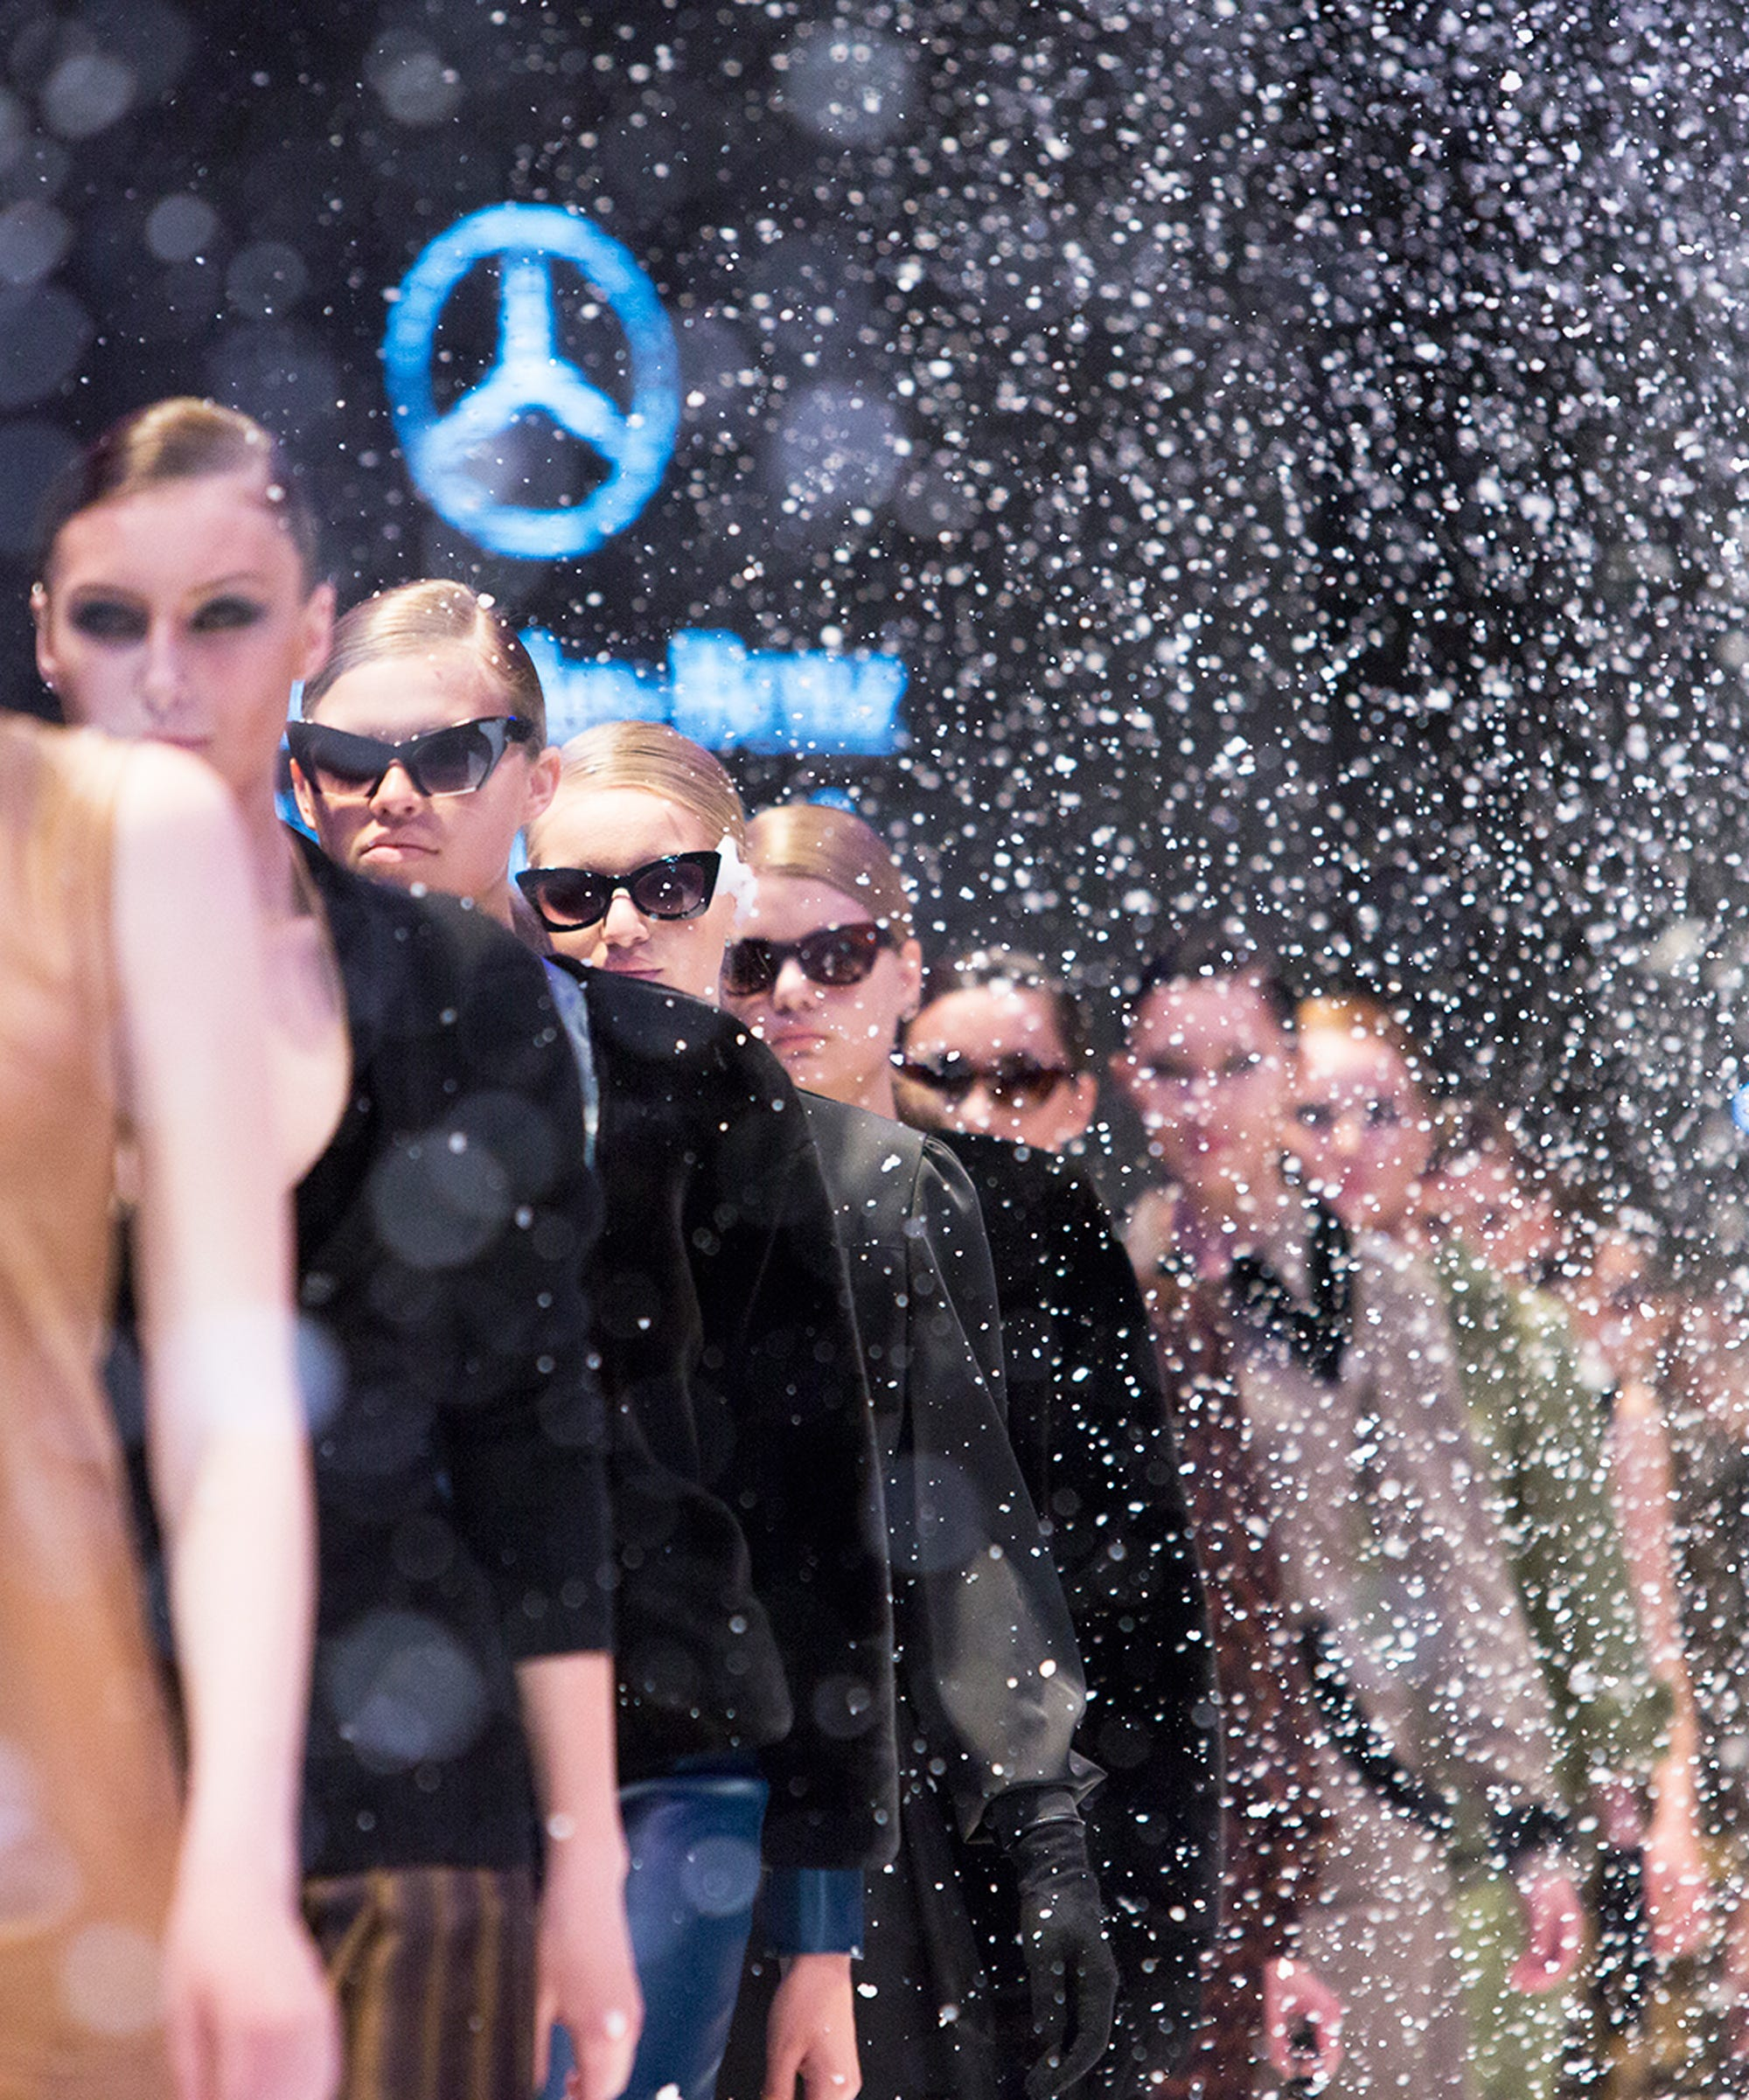 The Top 12 Fashion Shows You Can Relive On YouTube